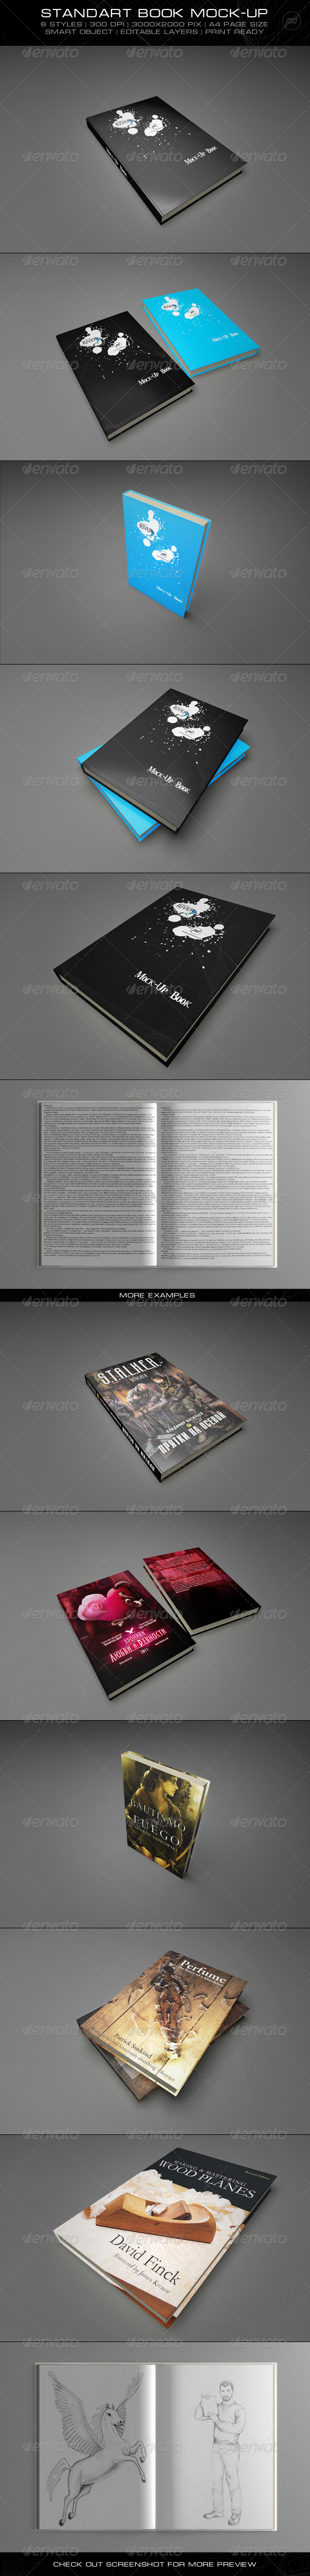 GraphicRiver Standart Mock-Up Book 1602433